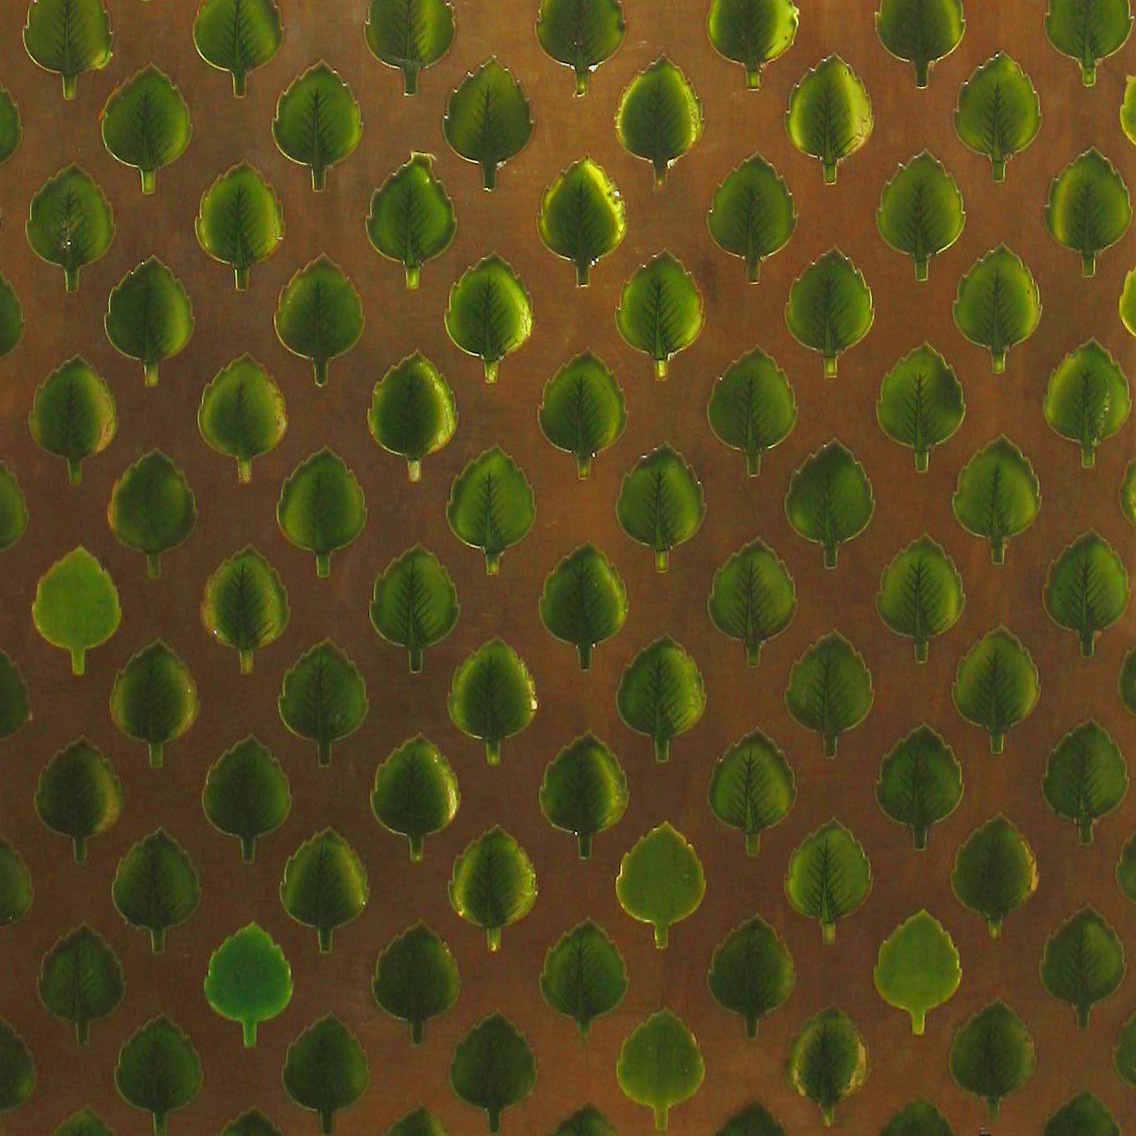 Patterned Metal